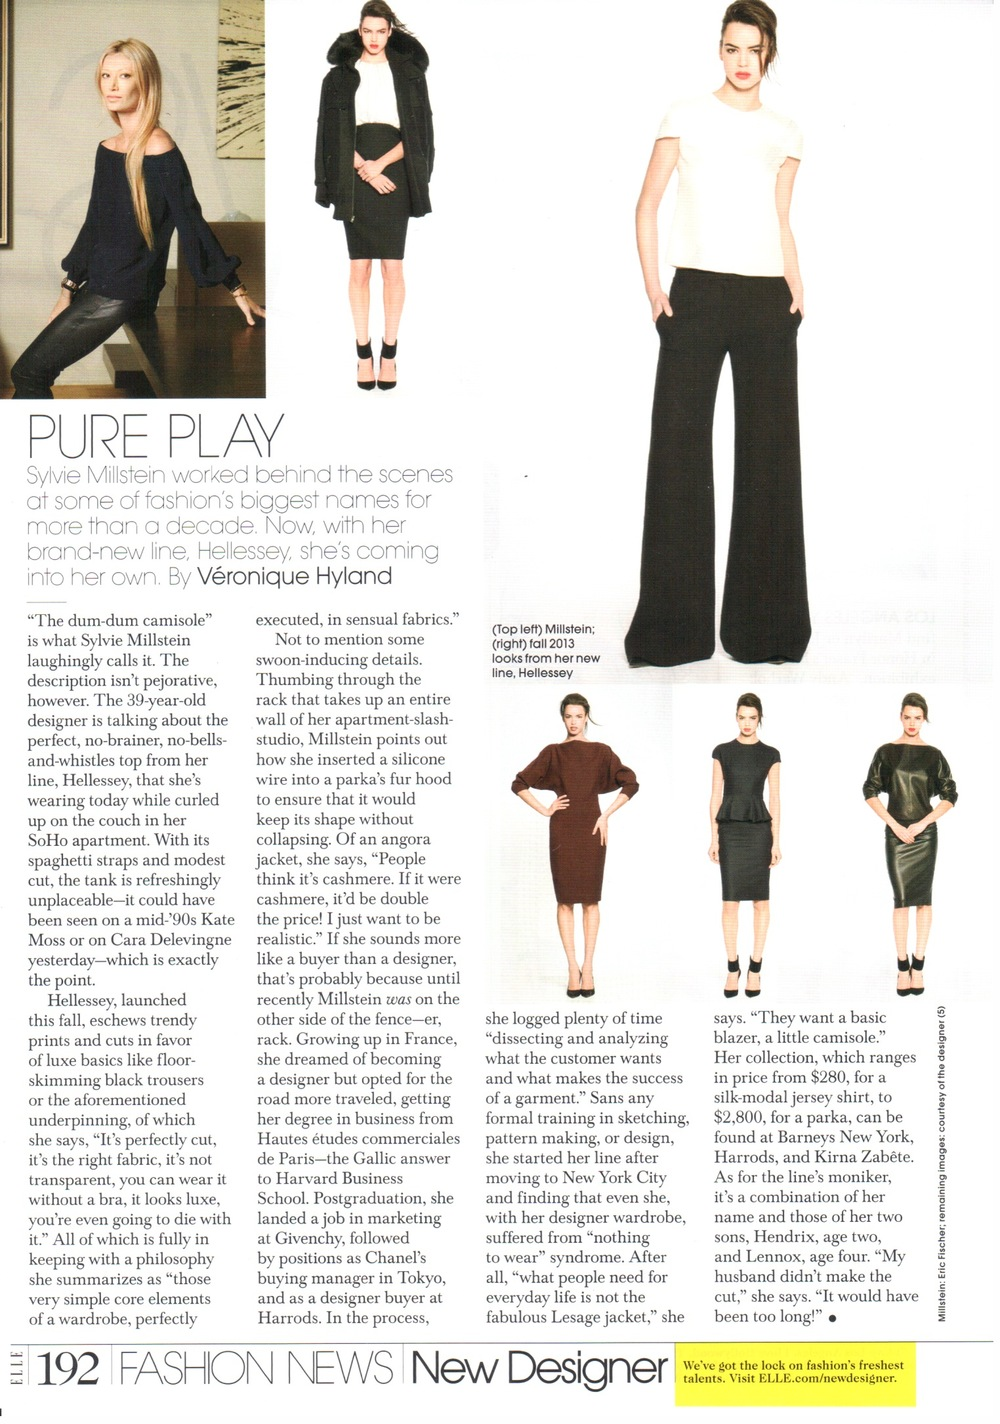 2013 10 oct_HELLESSY CLIPPING ELLE NOV. 2013.jpeg